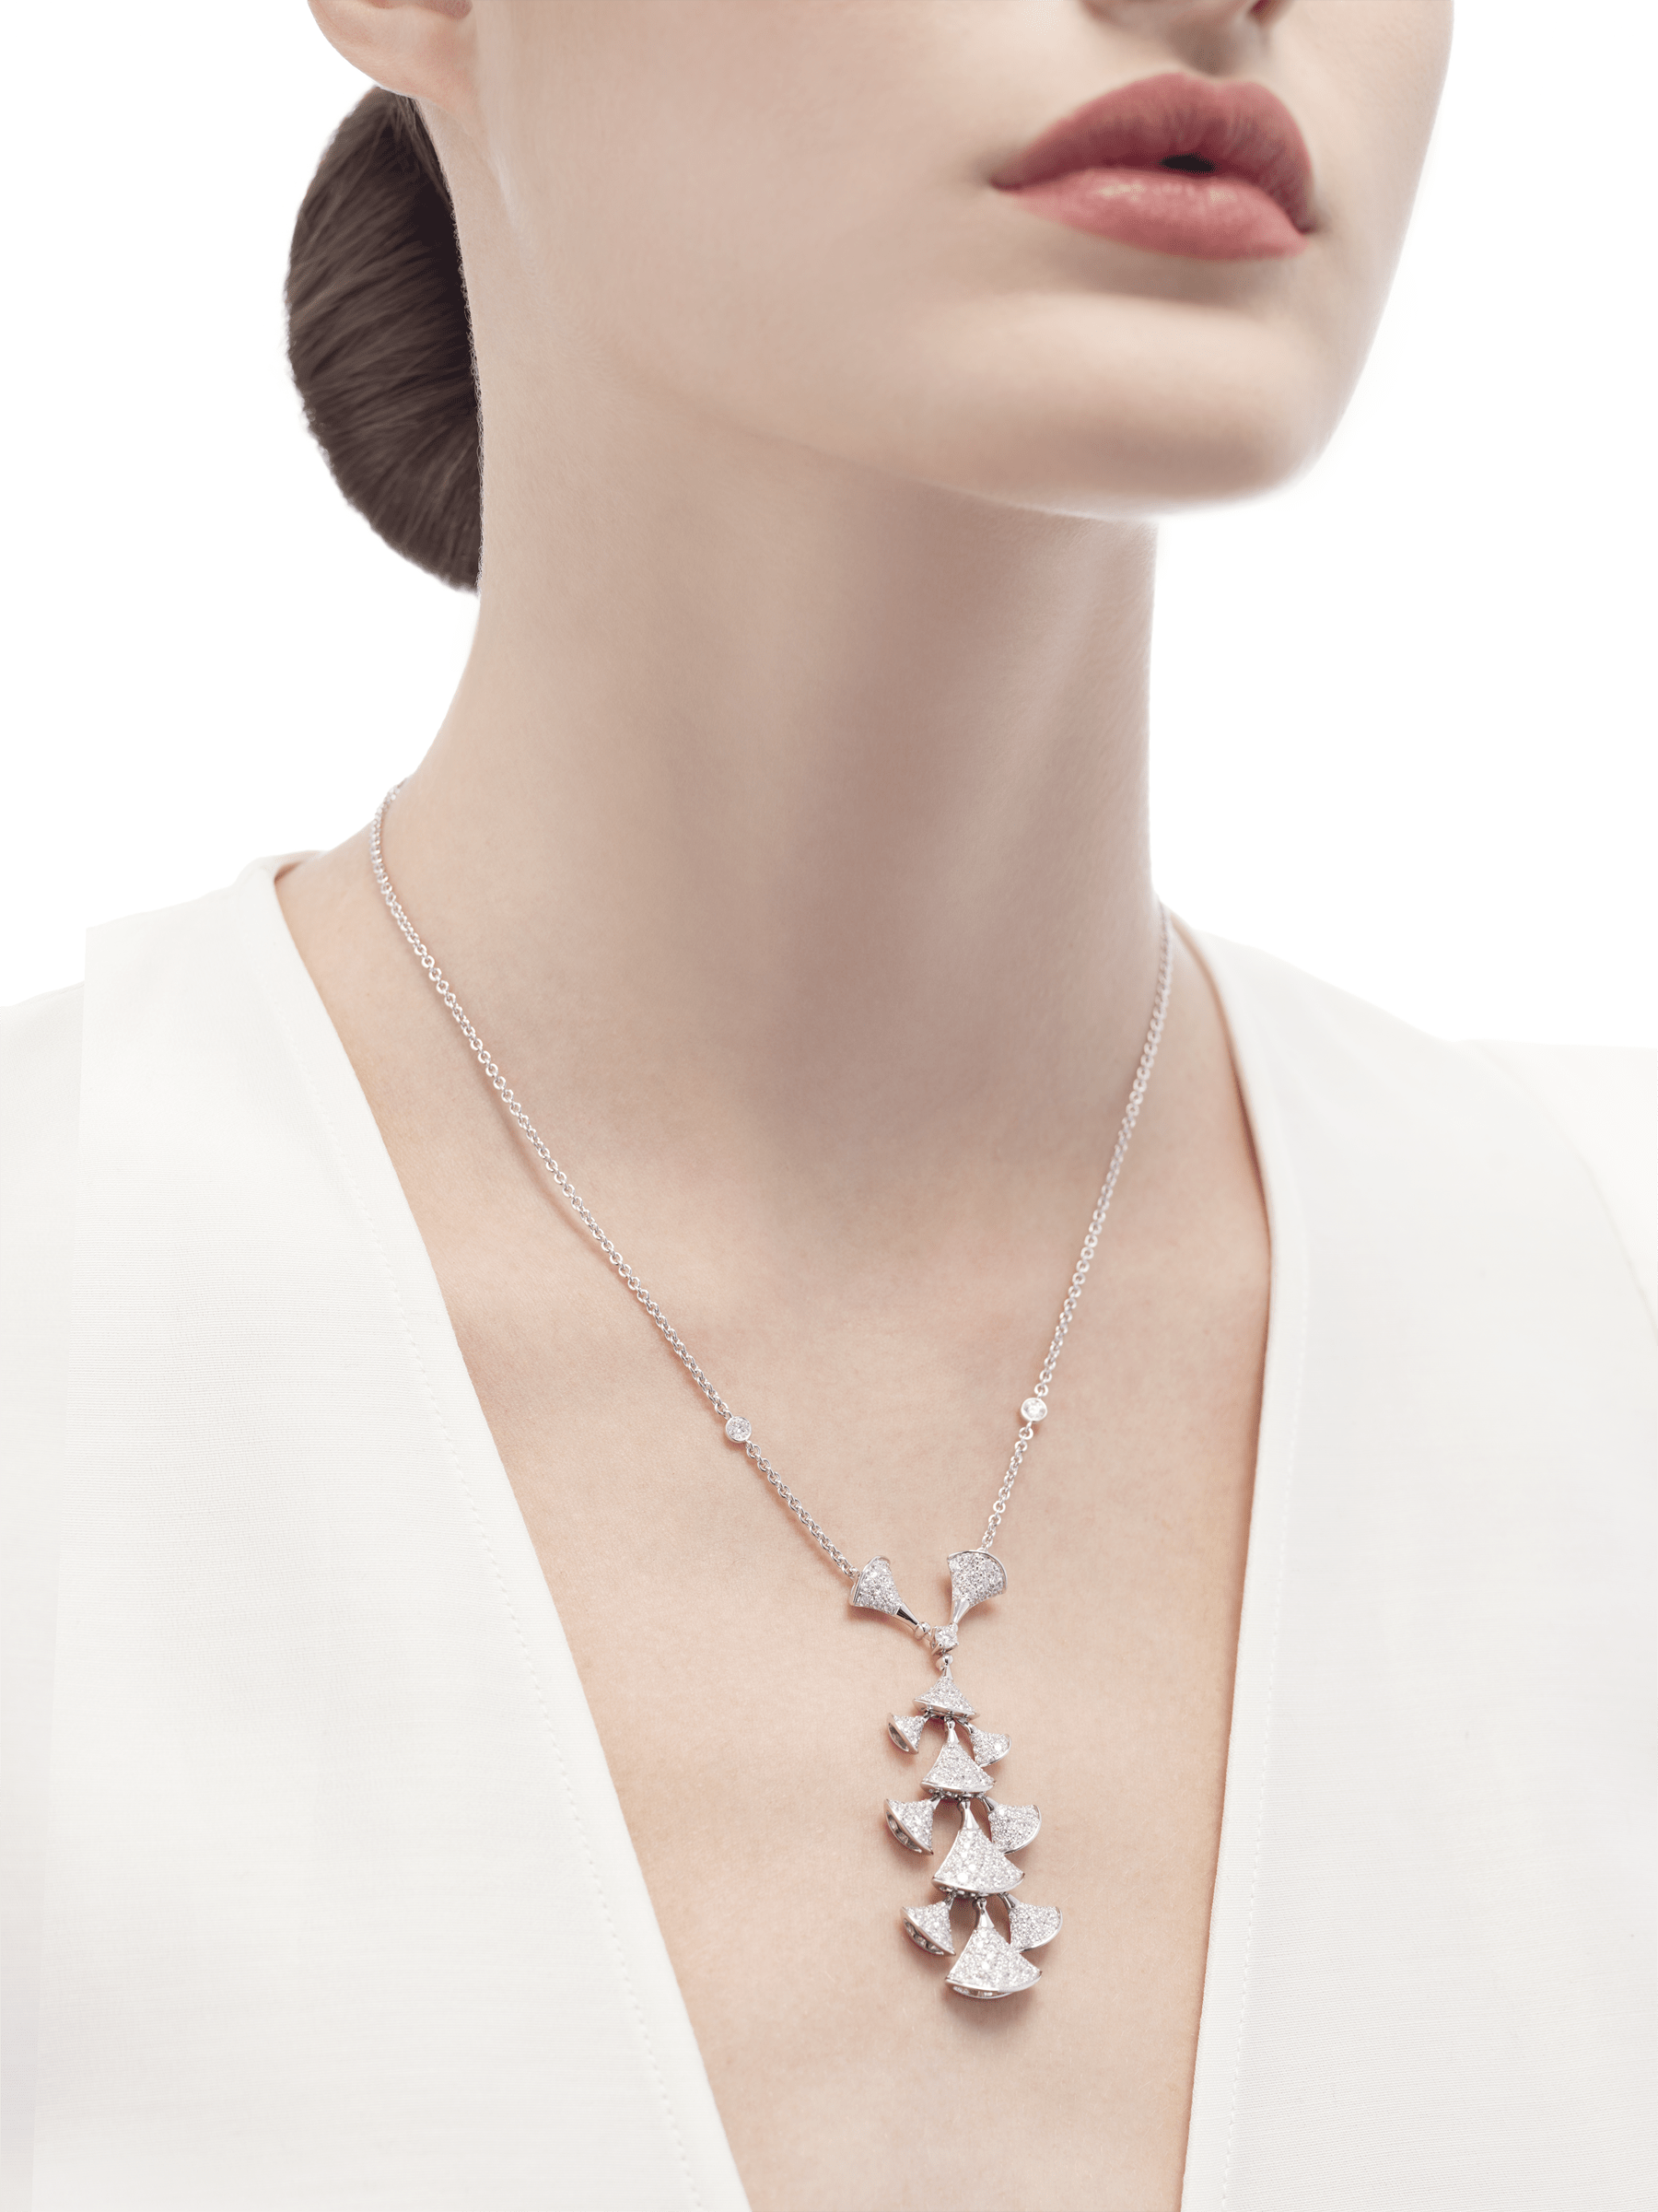 DIVAS' DREAM 18 kt white gold necklace set with diamonds and full pavé diamonds. 352608 image 4